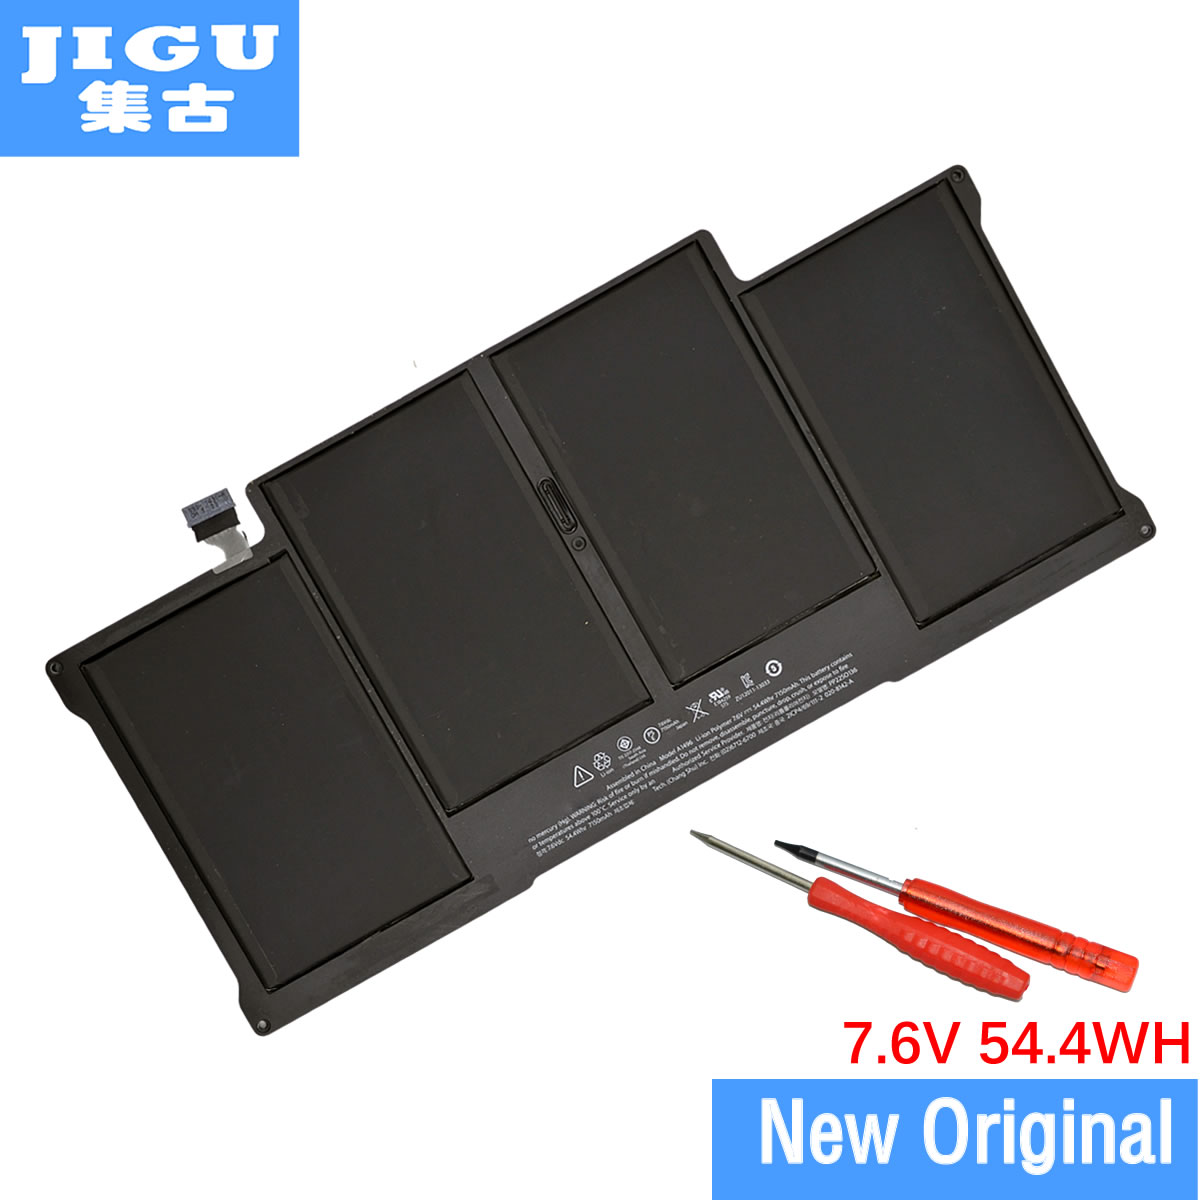 JIGU A1496 Original Laptop Battery For APPLE for MacBook Air 13 A1466 2013/2014 MD760LL/A MD761CH/A 7.6V 7150mAh new original a1466 ru russian topcase keyboad for apple macbook air a1466 13 2013 2014 free shipping